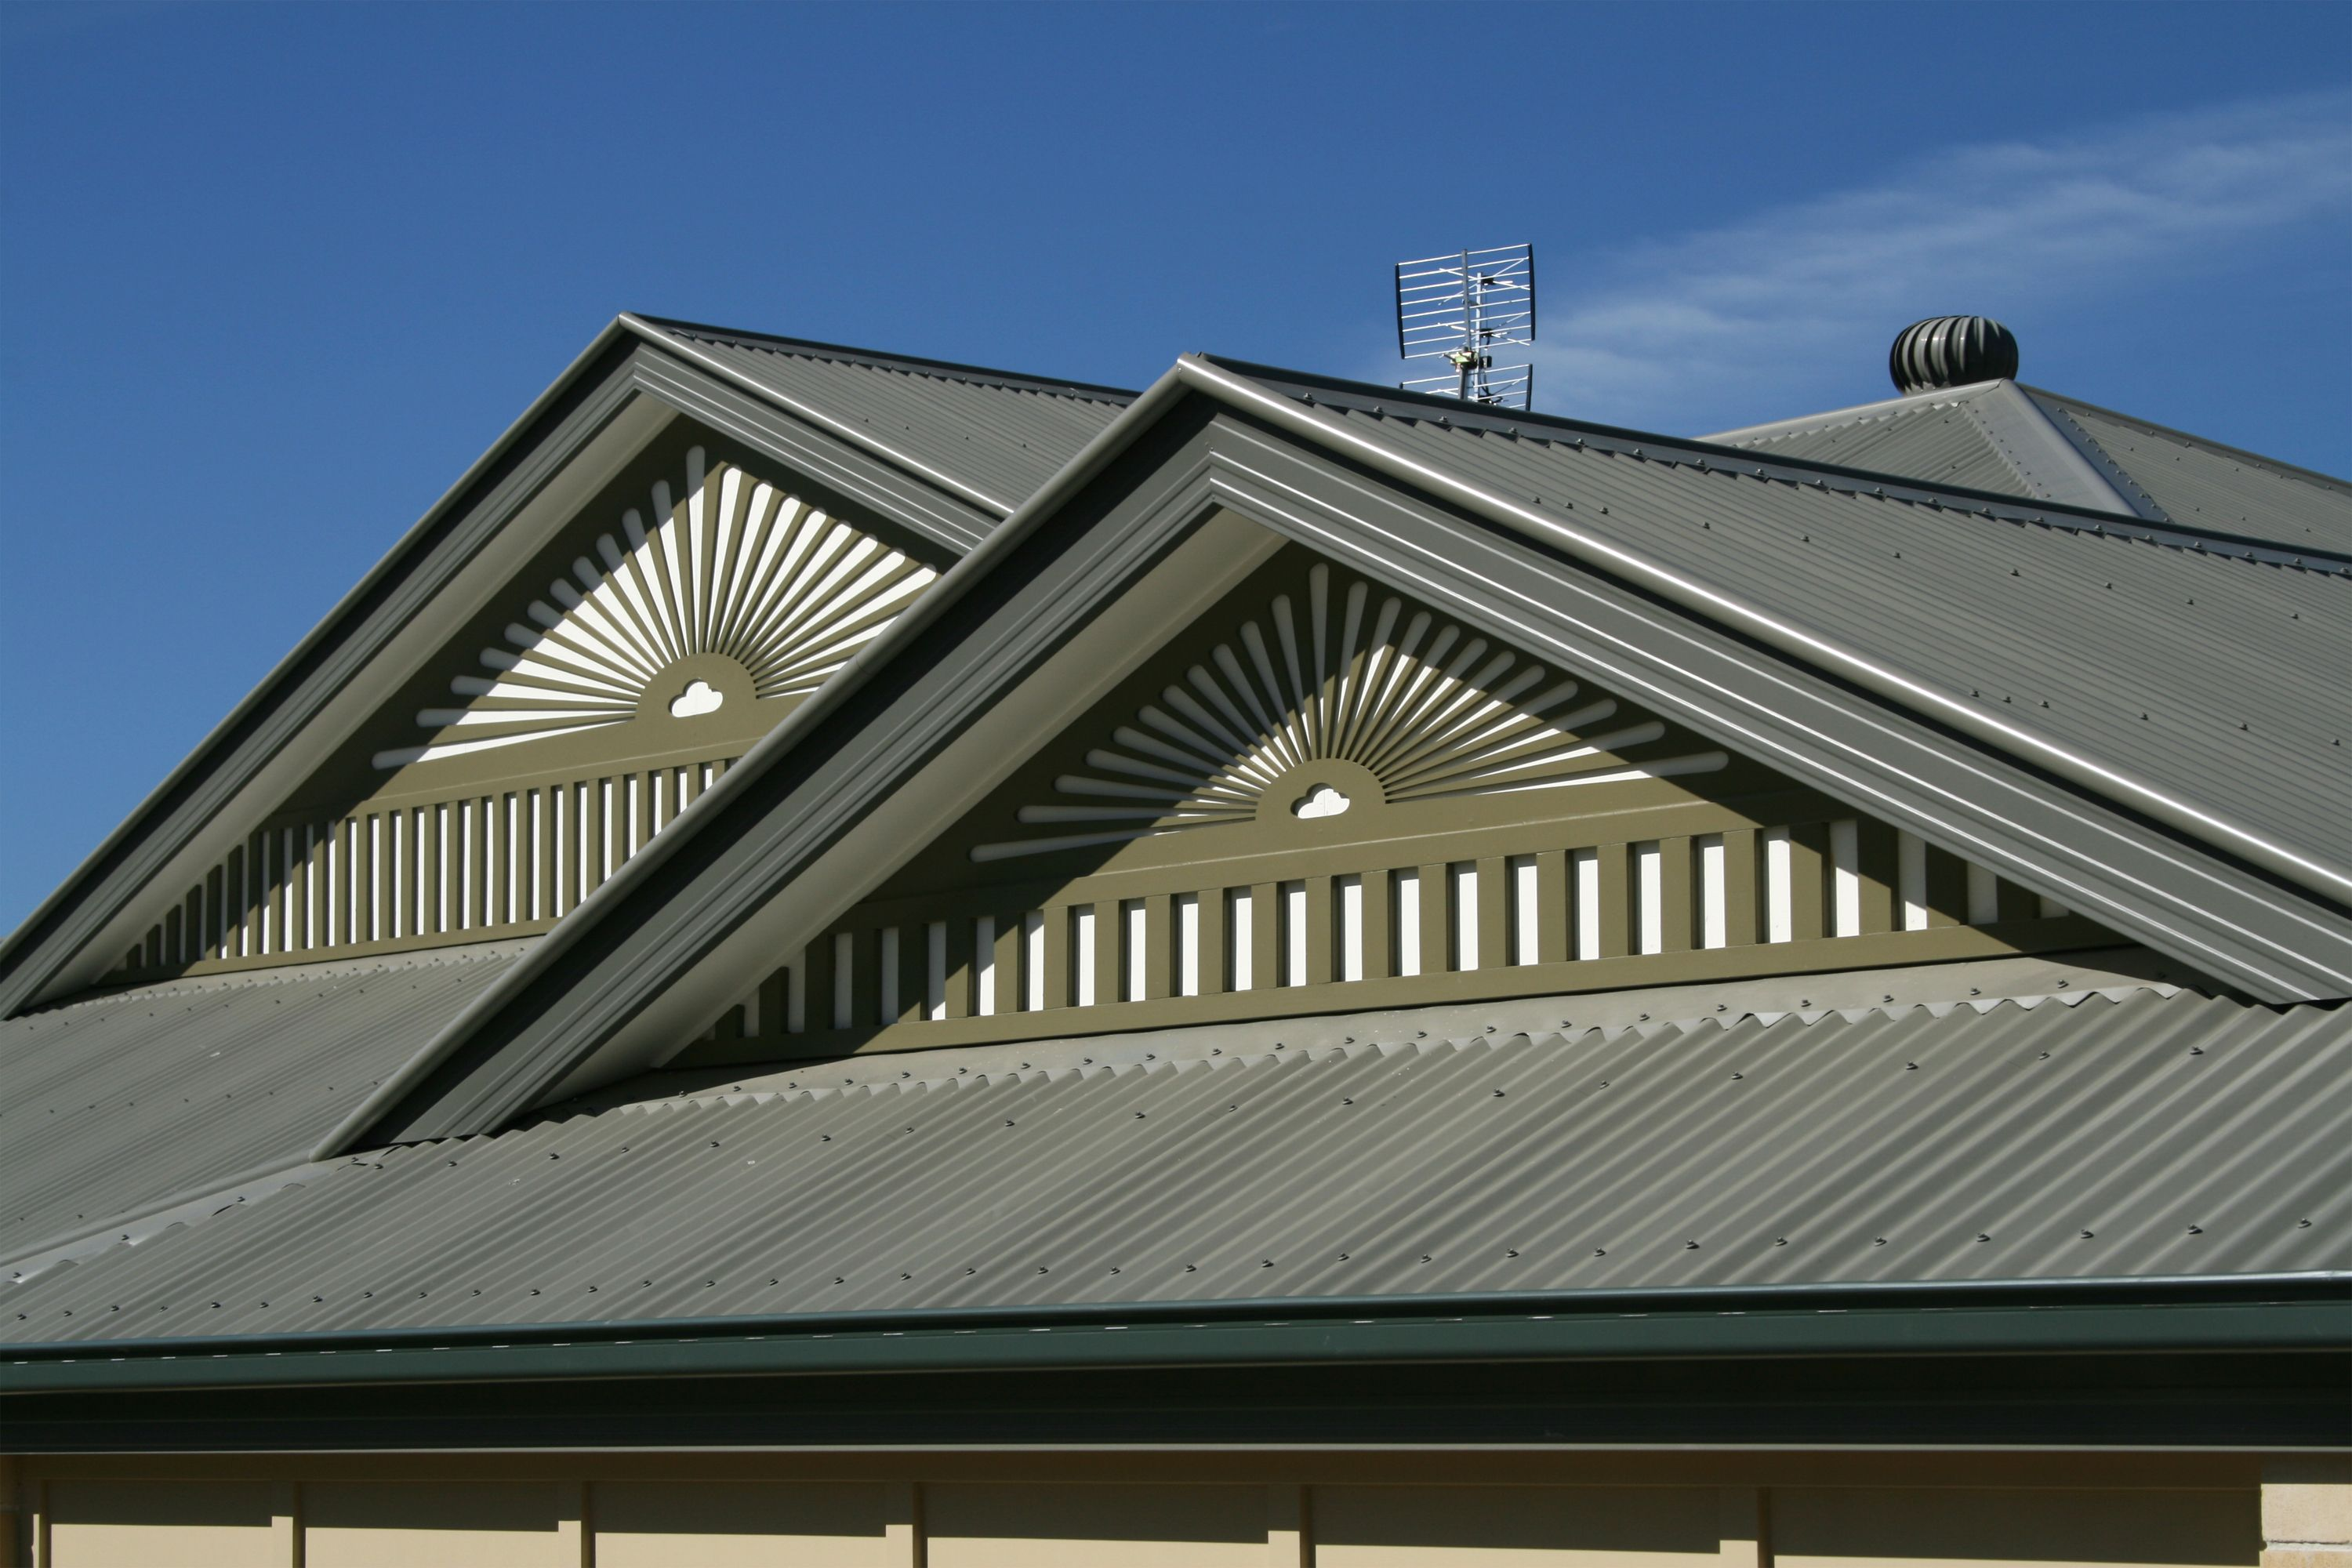 How To Install Galvanized Roof Panels Hunker Gable Roof Design Standing Seam Metal Roof Fibreglass Roof